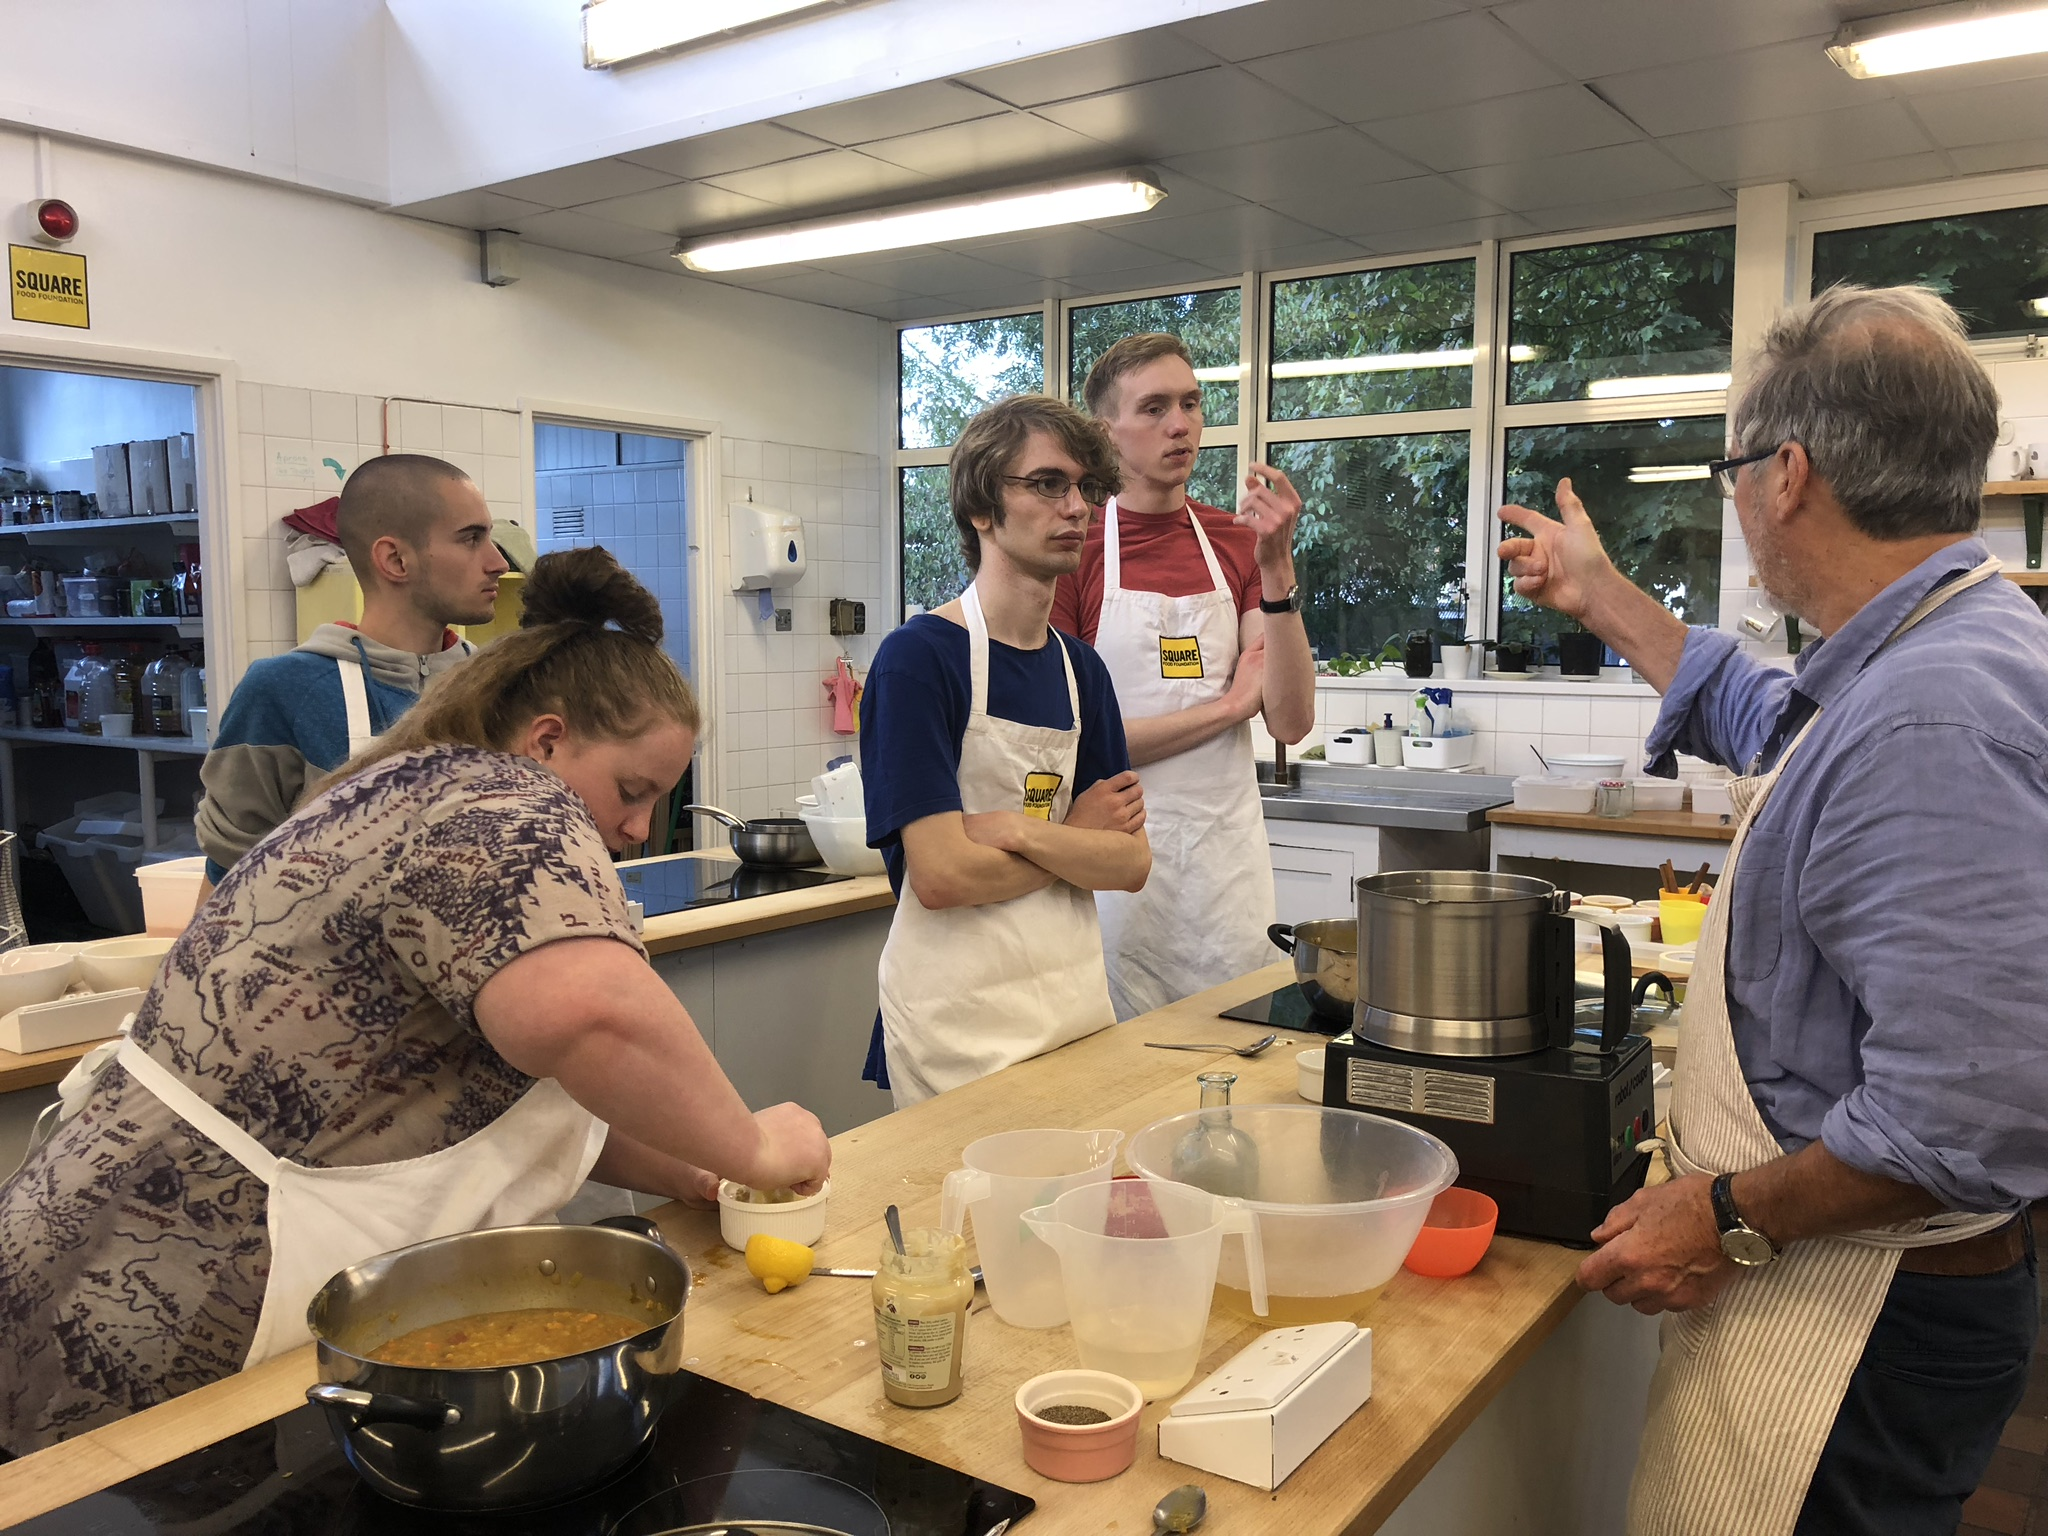 The current cohort on the young chefs programme, learning to cook at Square Food Foundation.jpeg